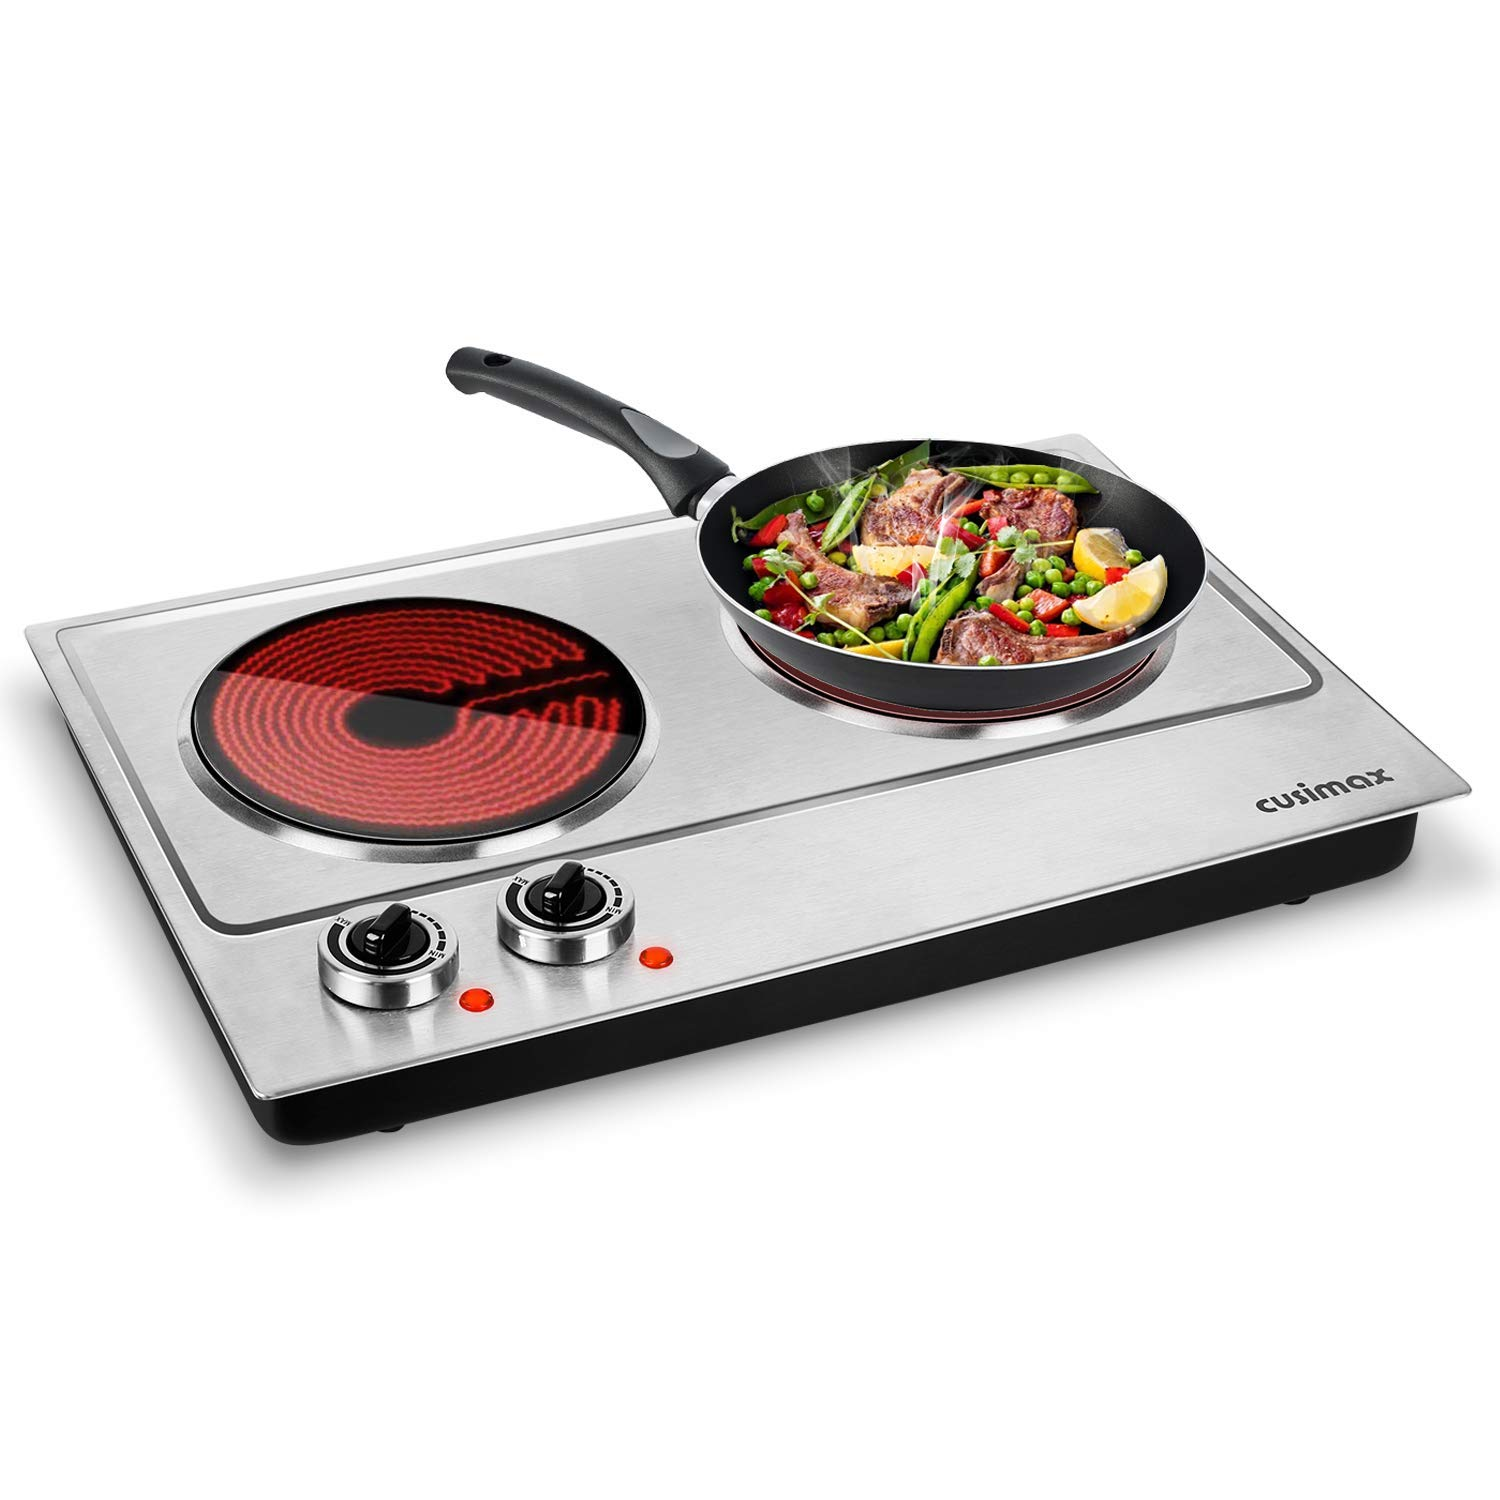 Cusimax Hot Plate 1800W Electric Double Burner Ceramic Infrared Countertop Cooktop Glass Heating